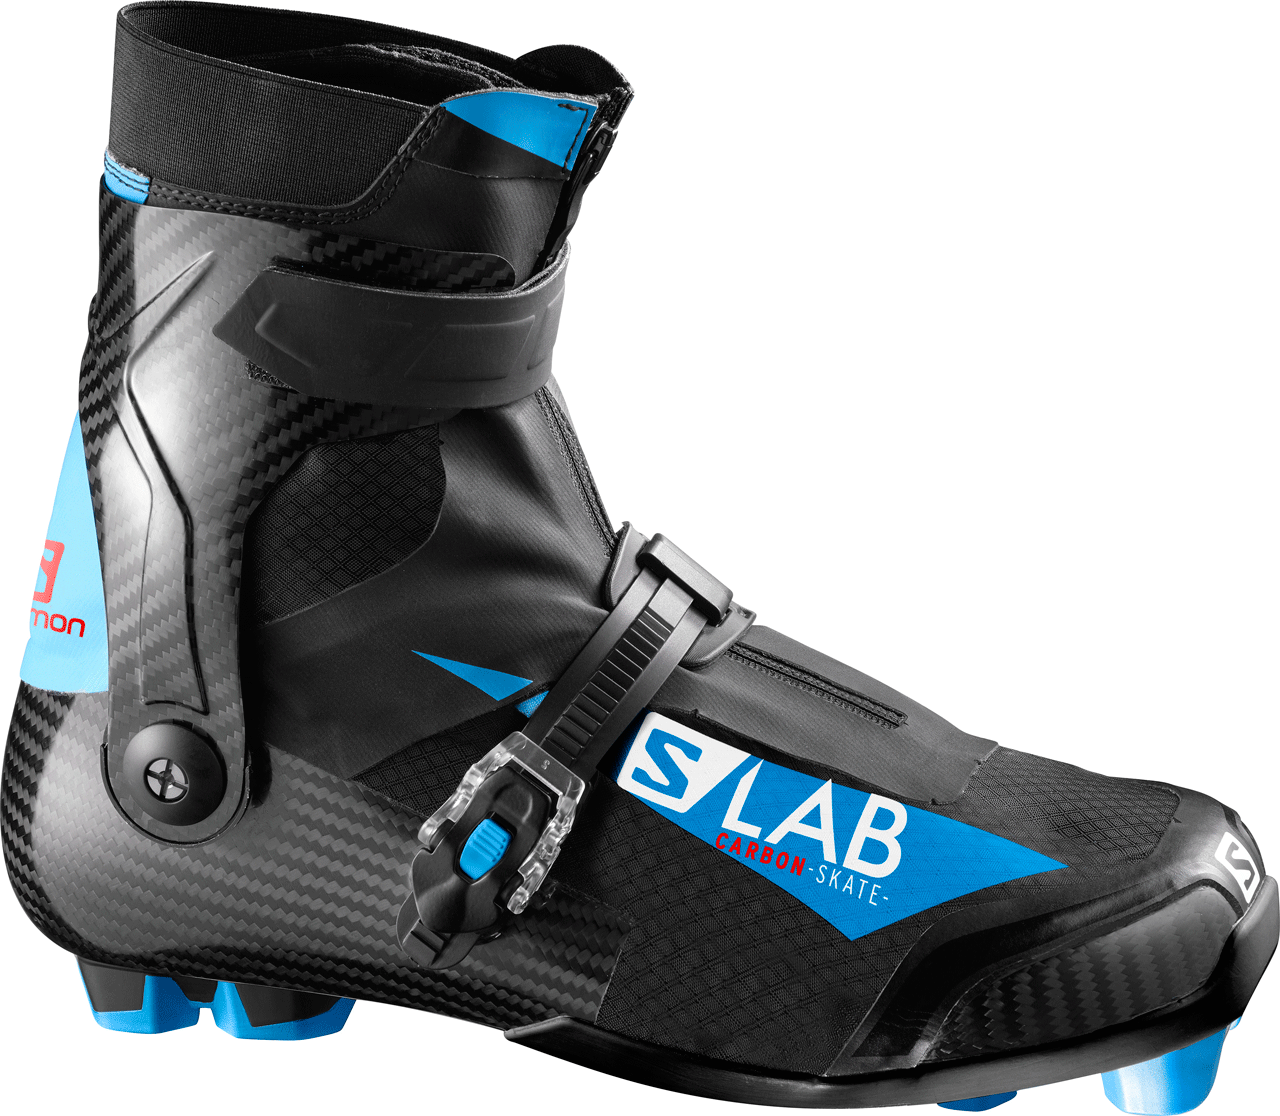 60ca28bfd9 Salomon S Lab Carbon Skate Boot - Pilot - Gear West Ski and Run